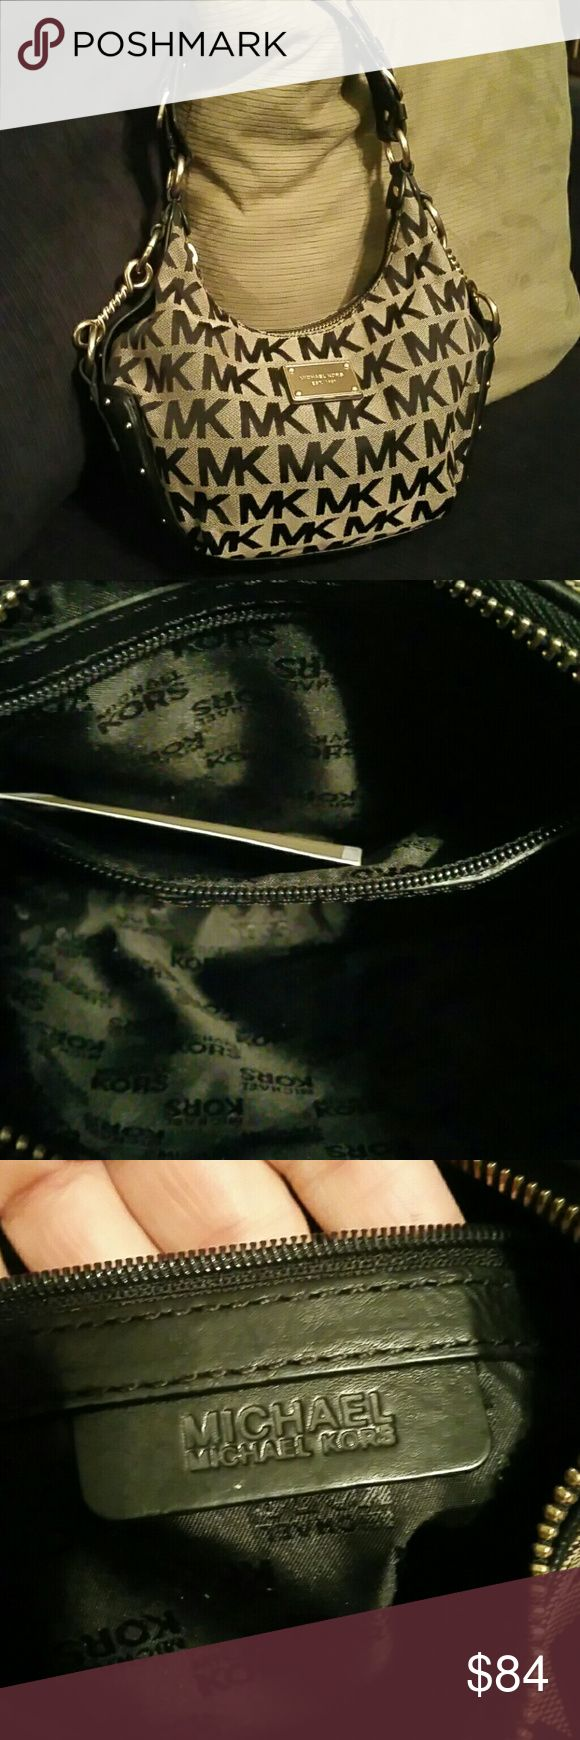 Small Michael kors hobo shoulder bag Like new, small MK hobo bag. I bought this for myself but it was way too small so I gave it to my friends daughter and she only uses wristlets.  This is a great bag in amazing condition.  Perfect for someone who doesn't carry much. Price is firm Michael Kors Bags Hobos